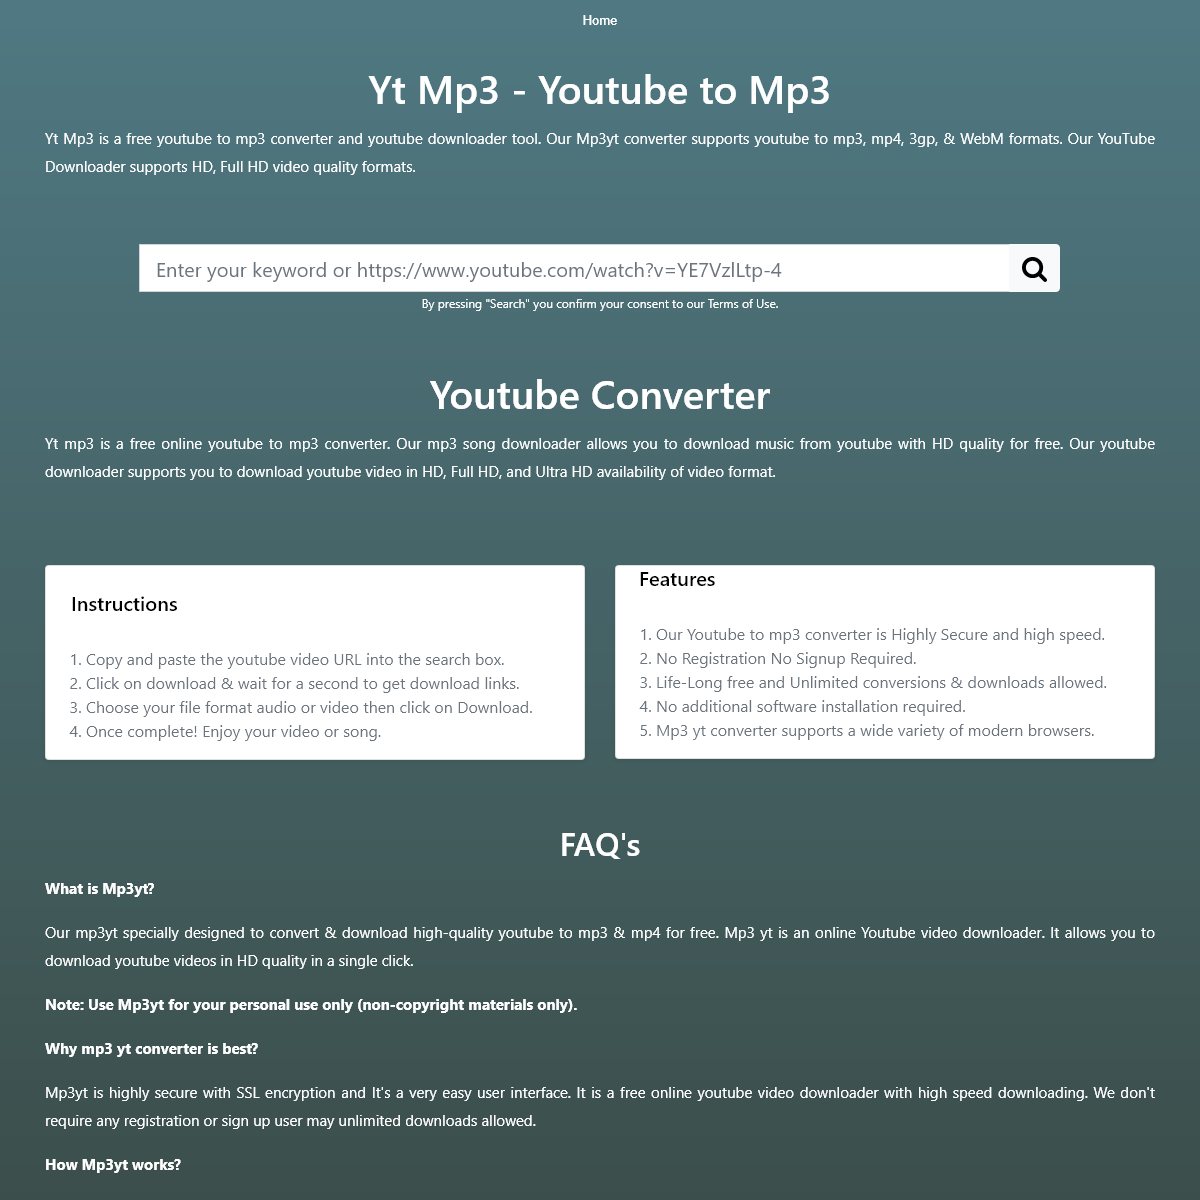 Yt Mp3 - Youtube to Mp3 Converter - Youtube Downloader